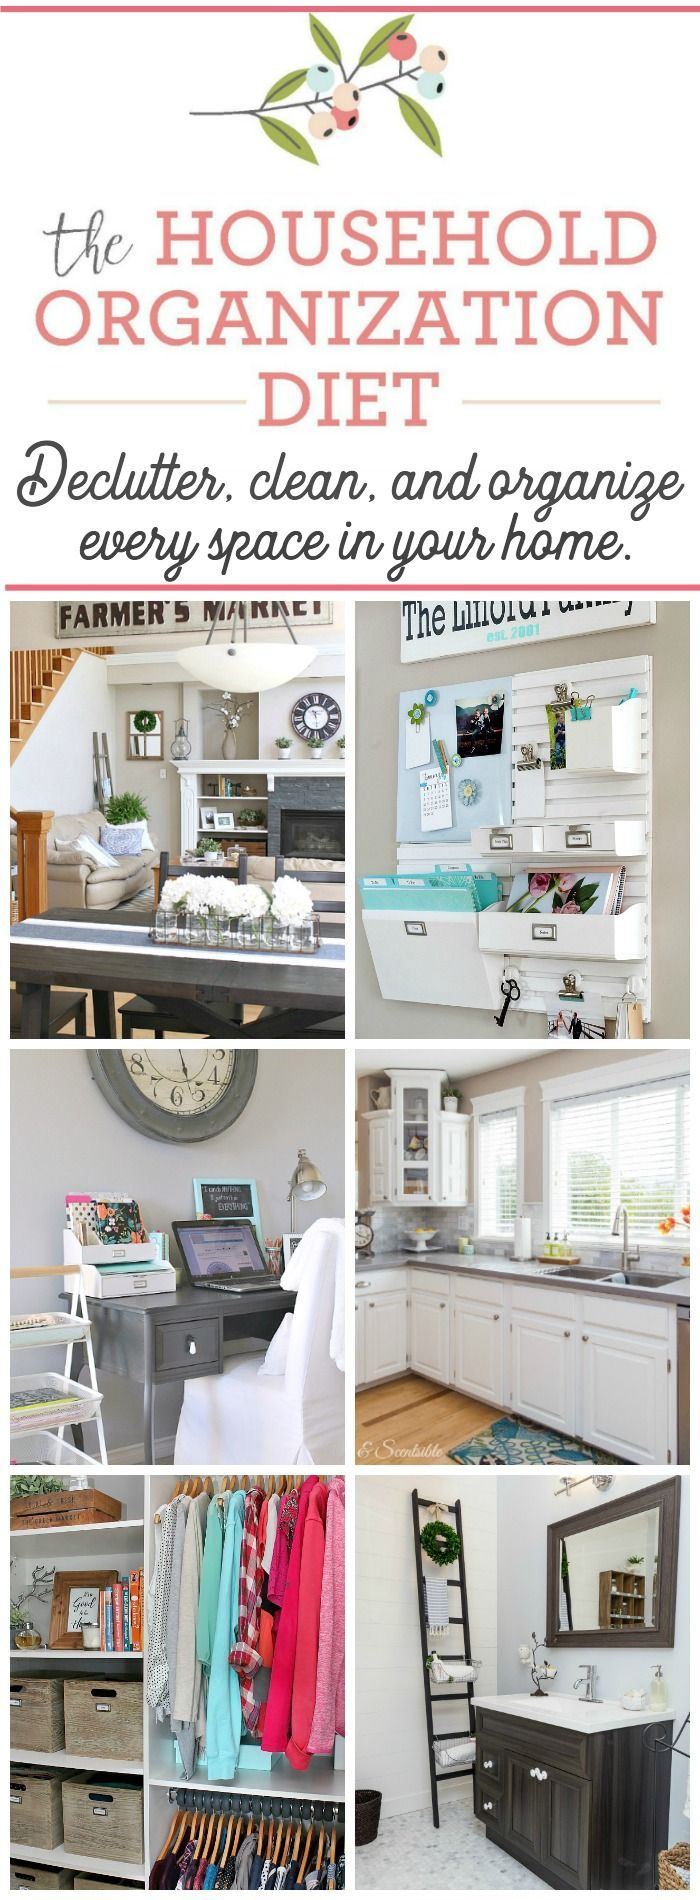 779 best Oh So Organized images on Pinterest | Organization ideas ...